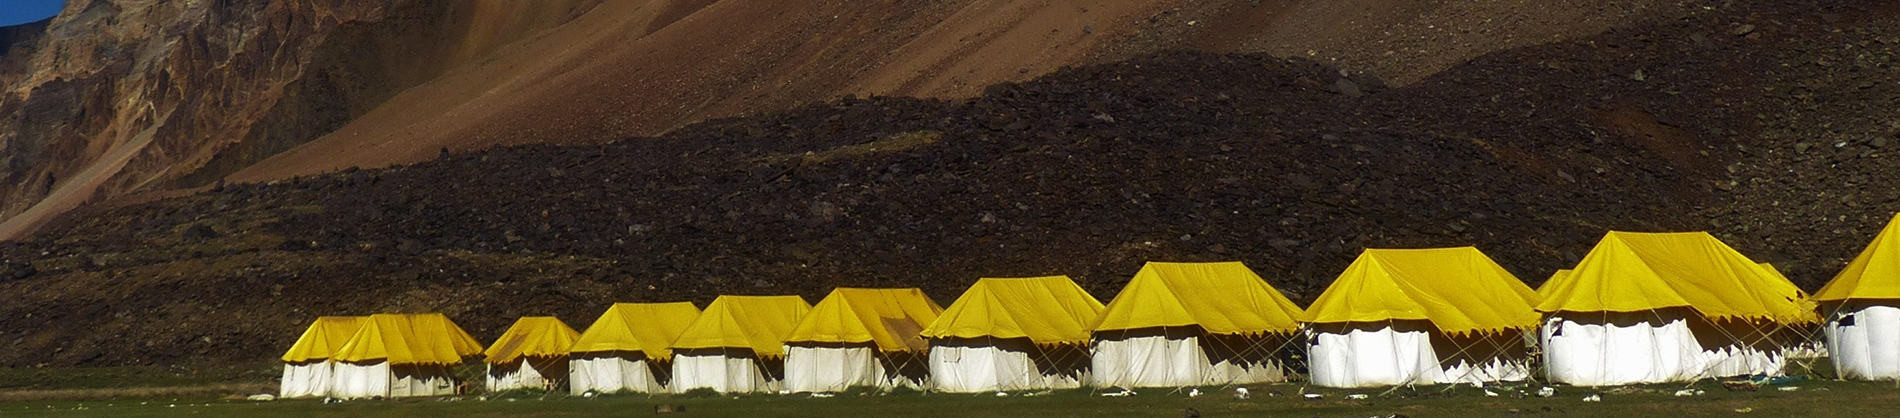 White and Yellow tents lined up on a mountain side